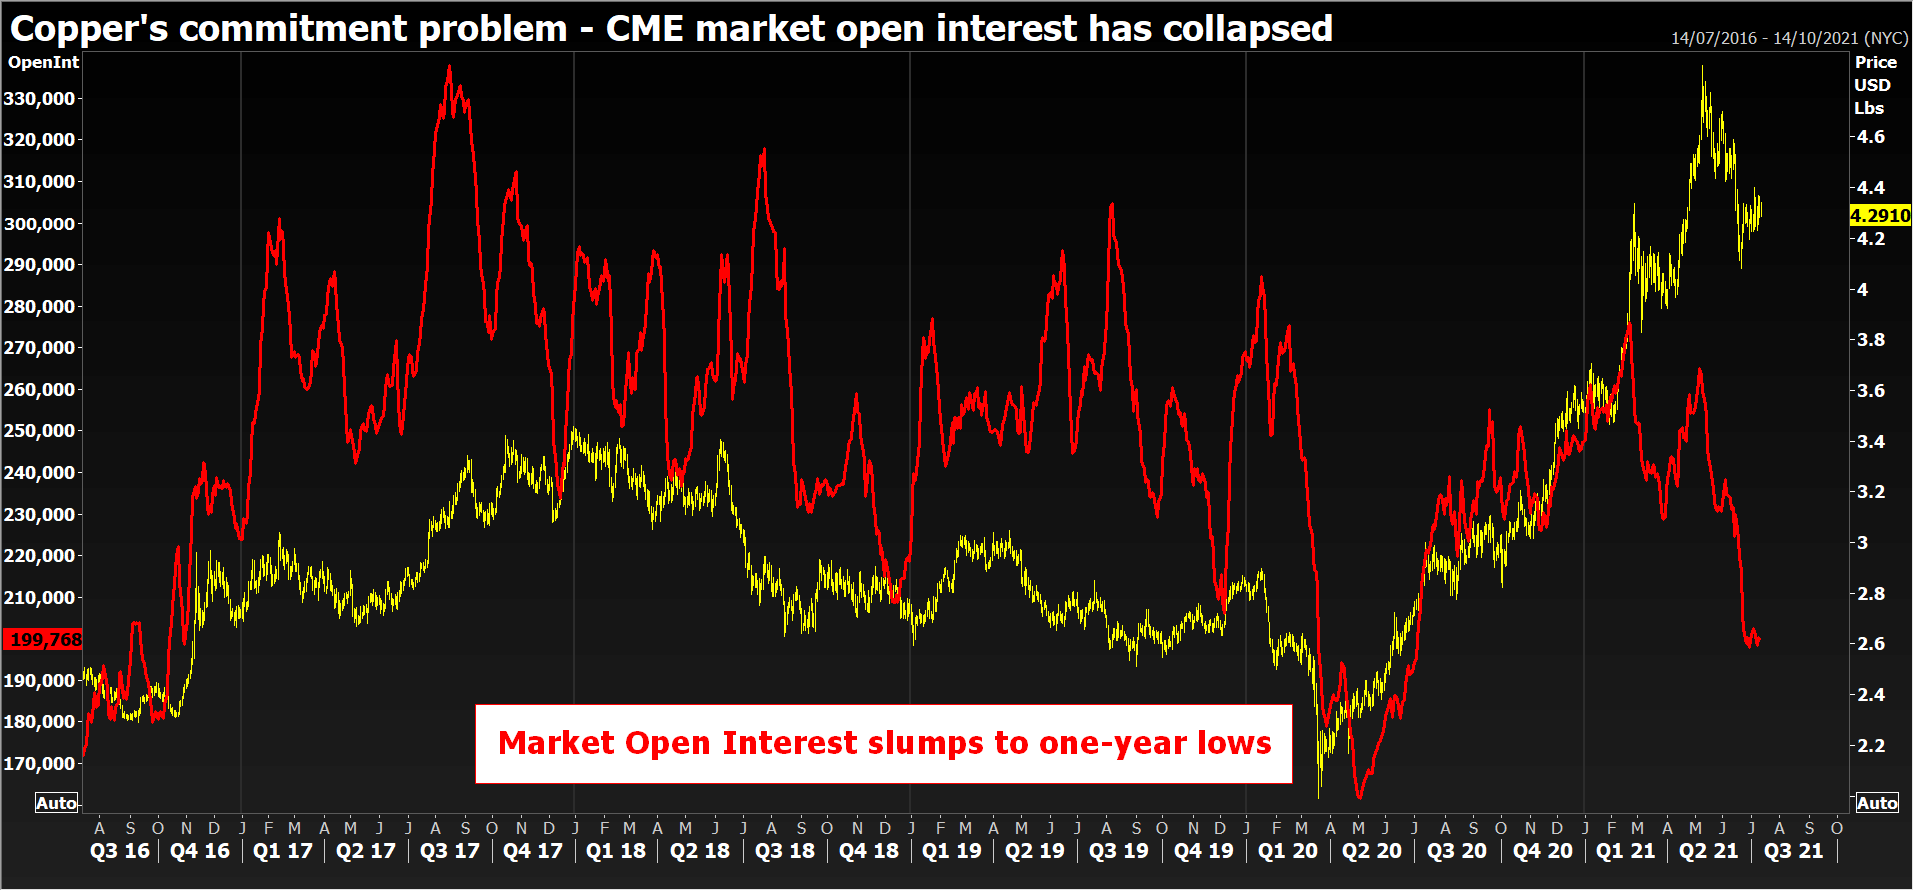 CME market open interest has collapsed.